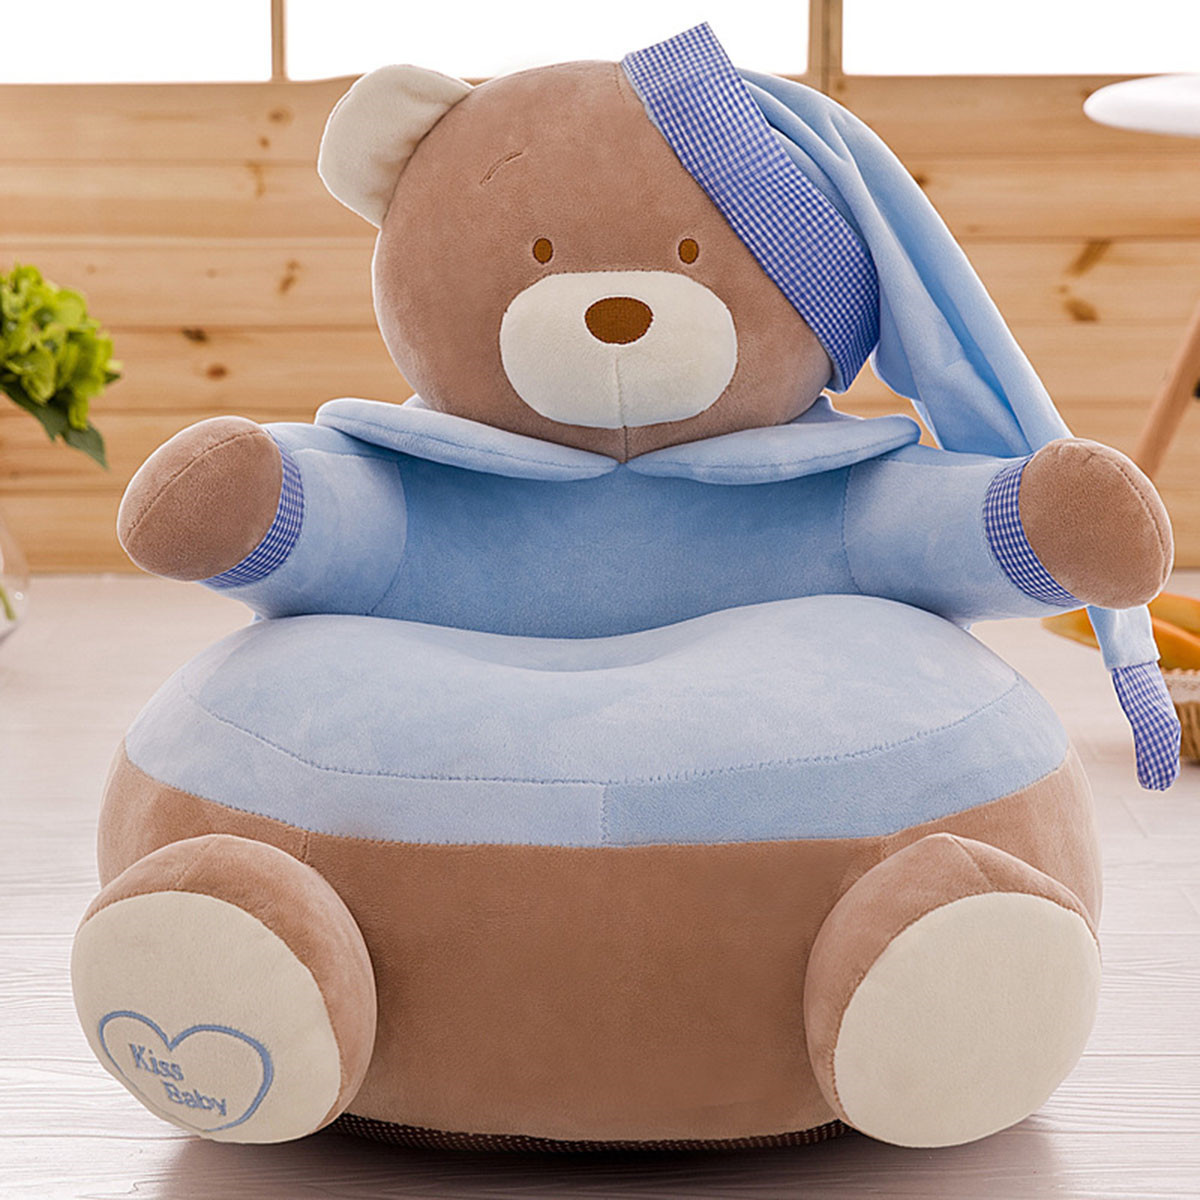 38 Extra Large Stuffed Animal Bean Bag Chair Canvas Soft Toy Storage Bags for Kids Childrens-Blue//White Stripe-38 TOPTIE